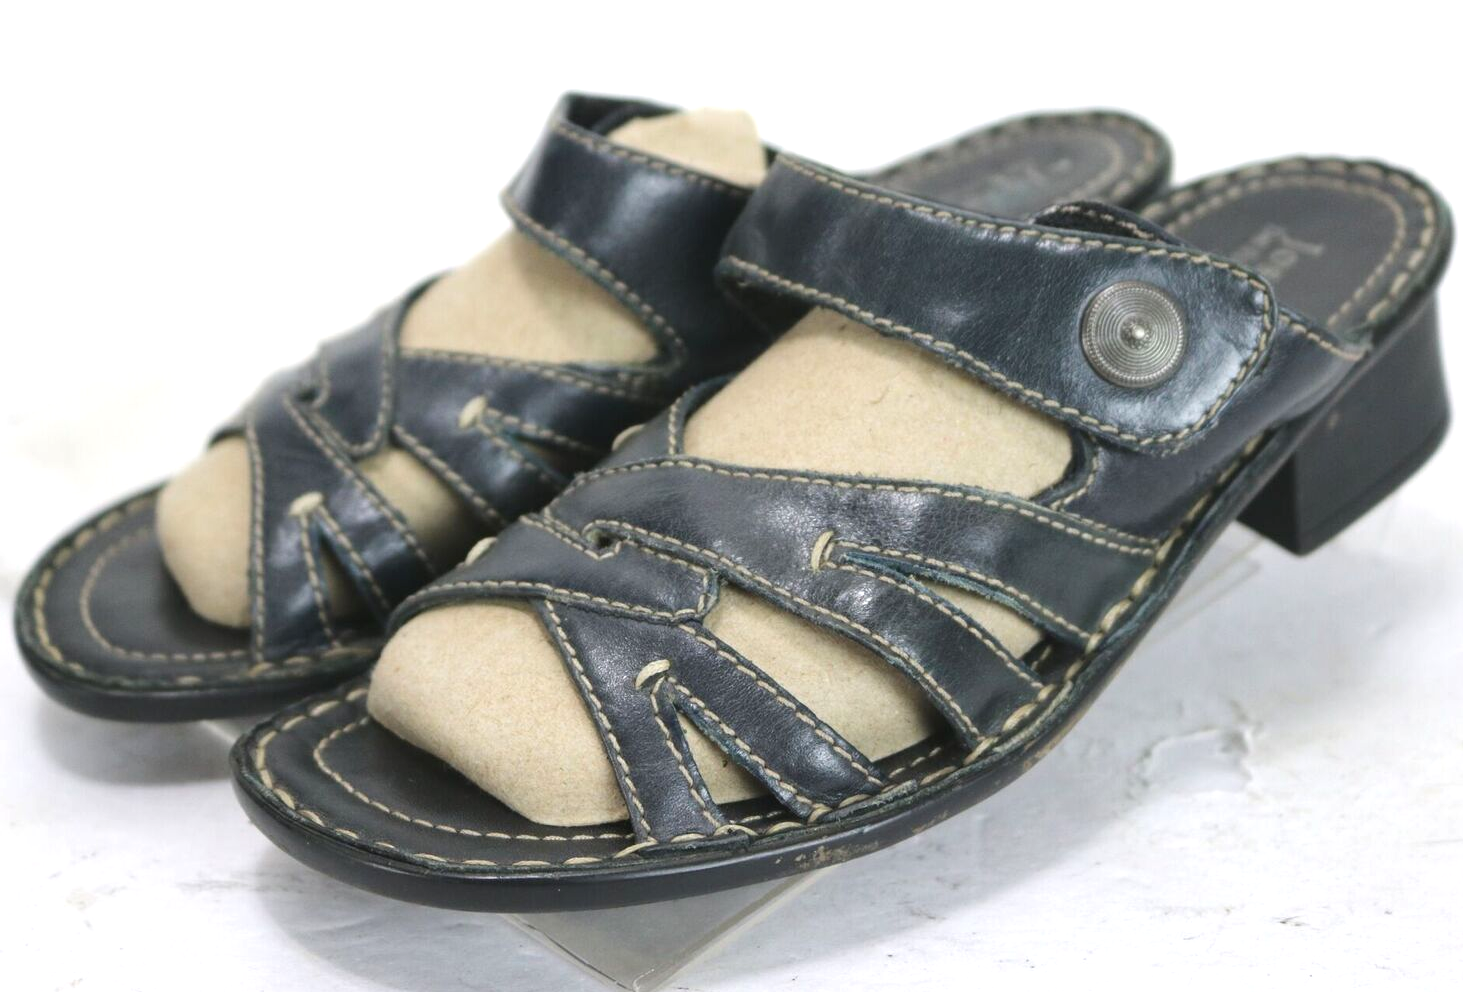 Josef Seibel Lorraine  90 Women's Sandals Size EU 39 US 8.5 Leather Black